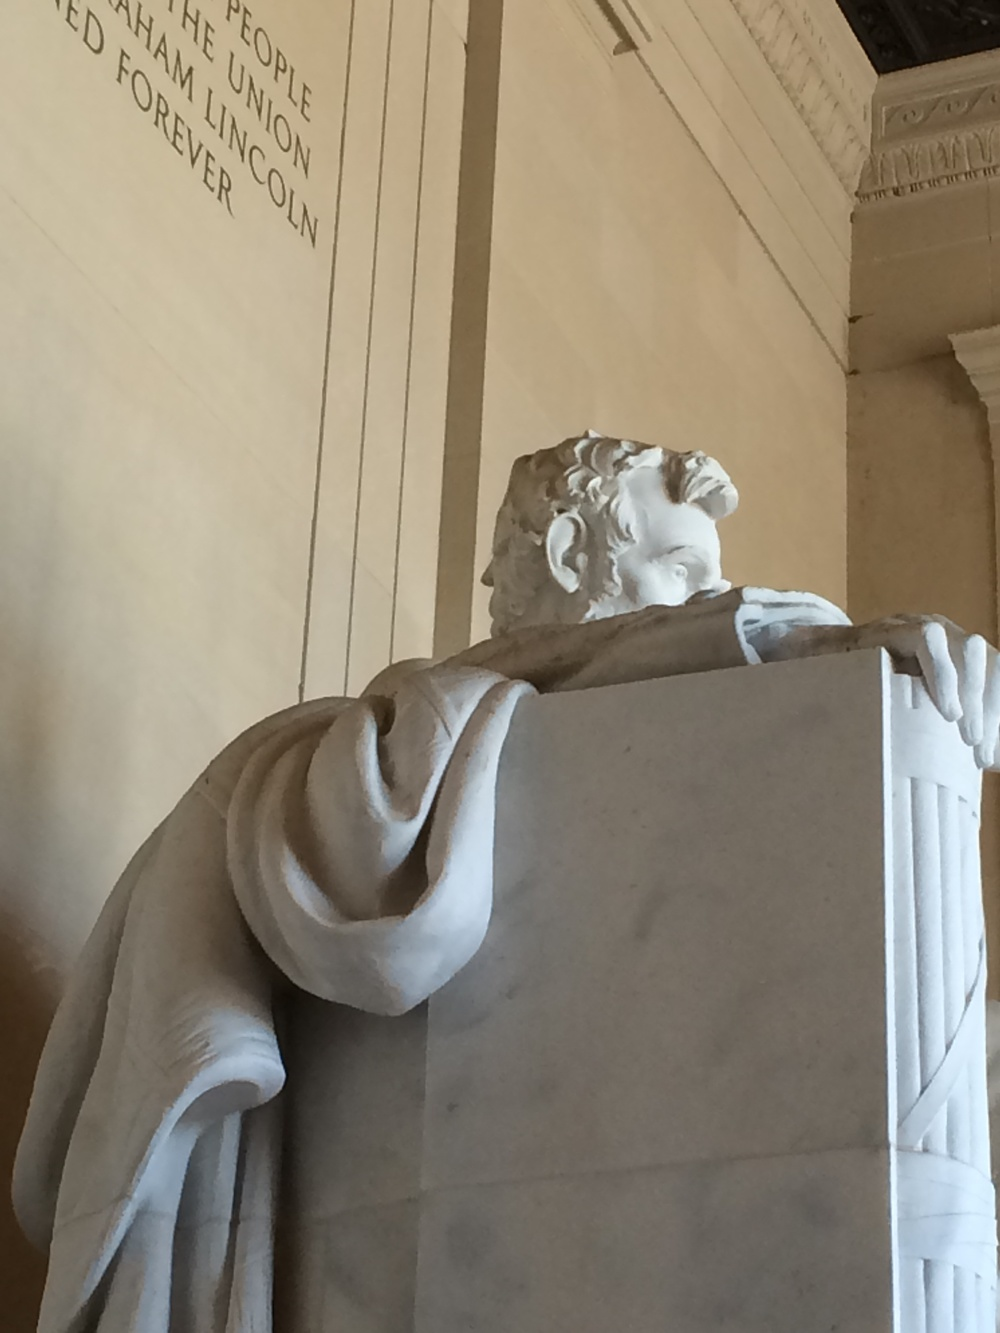 Daniel Chester French's Statue of Abraham Lincoln (Washington D.C.)